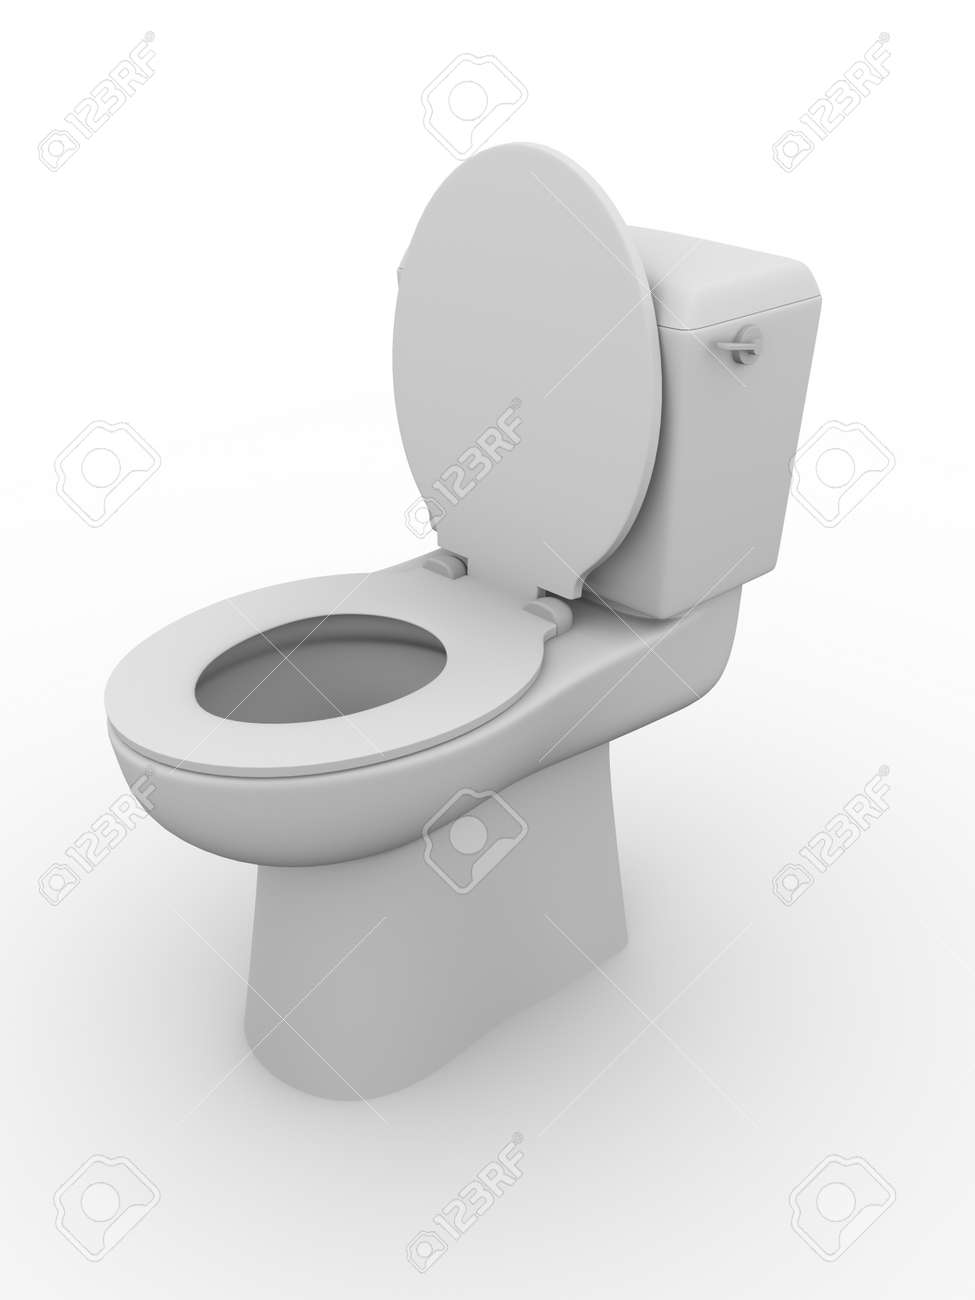 Open Toilet Bowl Bathroom Equipment Water Closet Wc Stock Photo